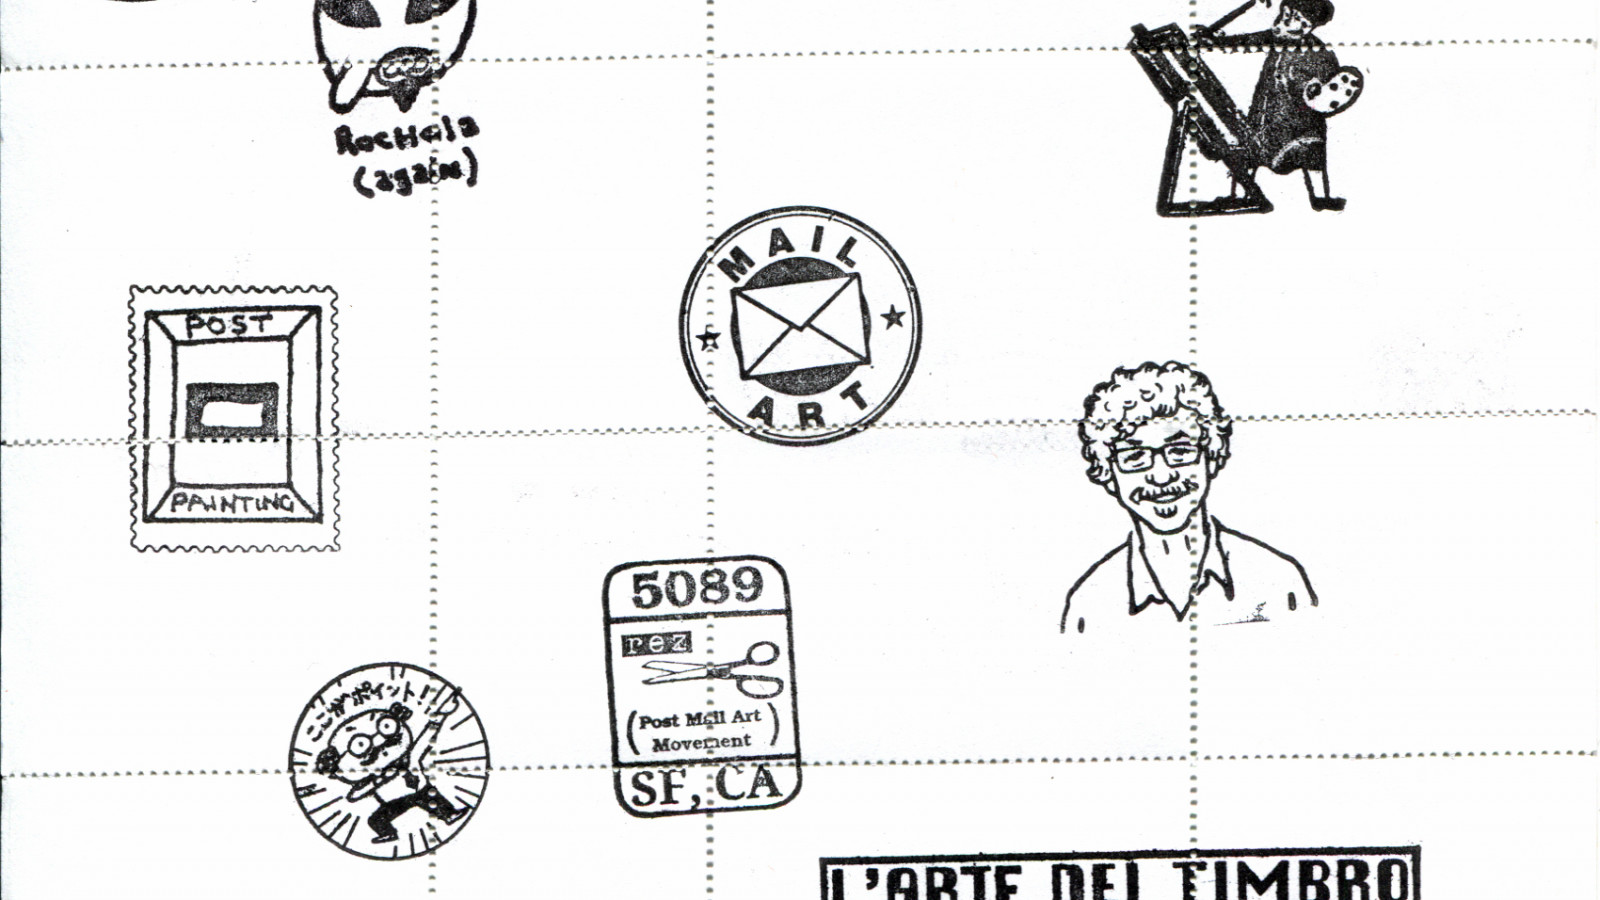 john held jr stampsheet